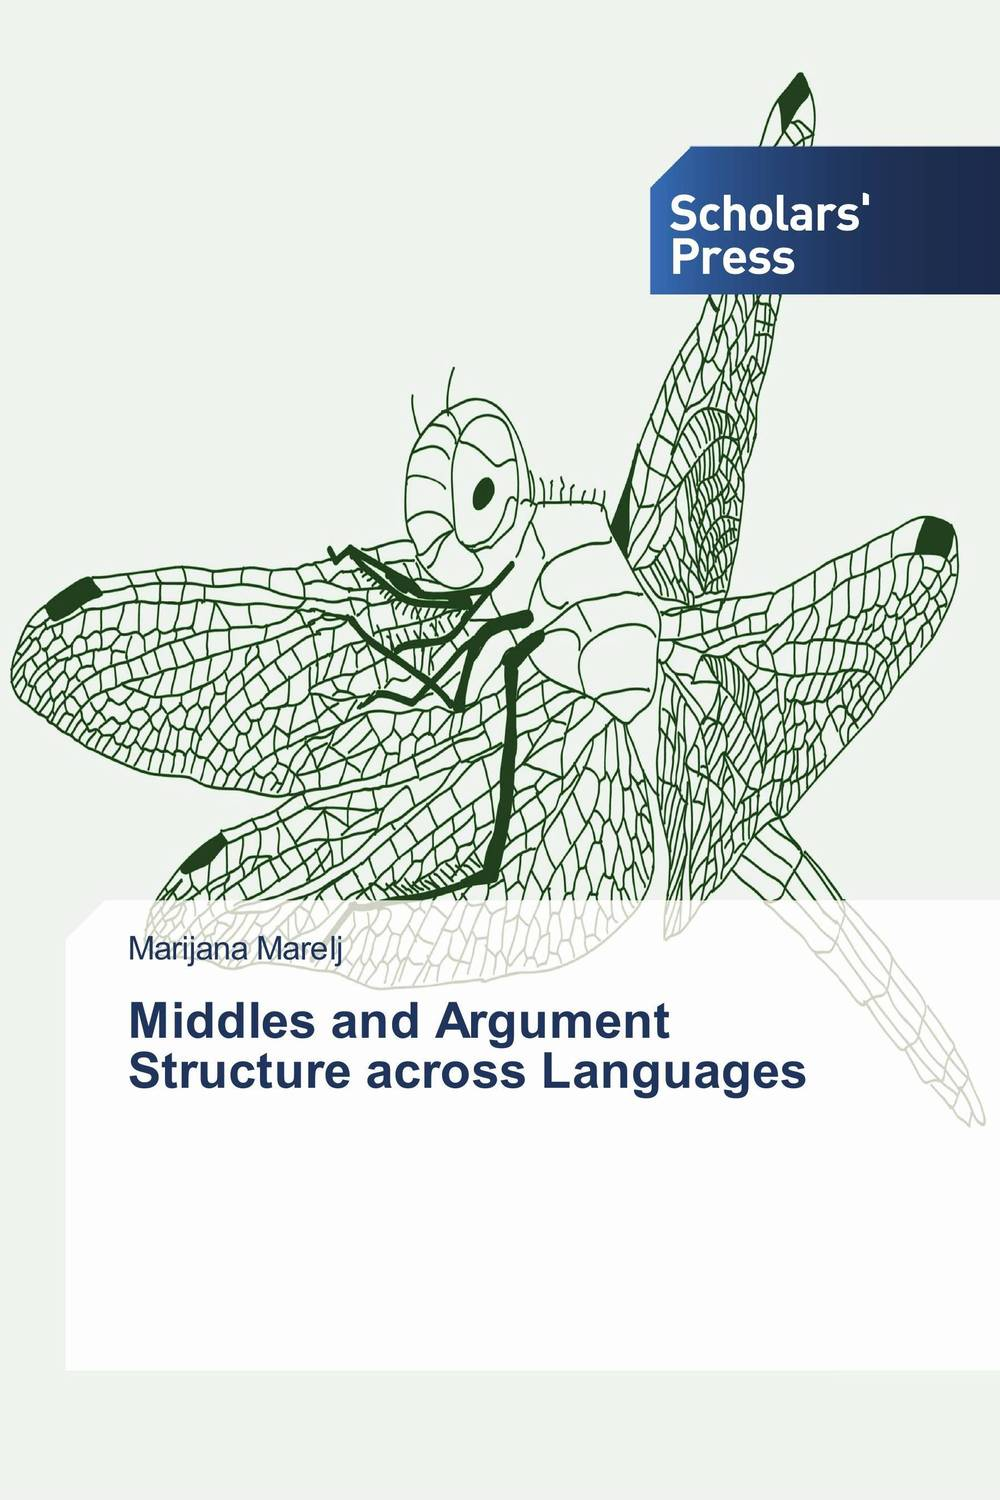 Middles and Argument Structure across Languages